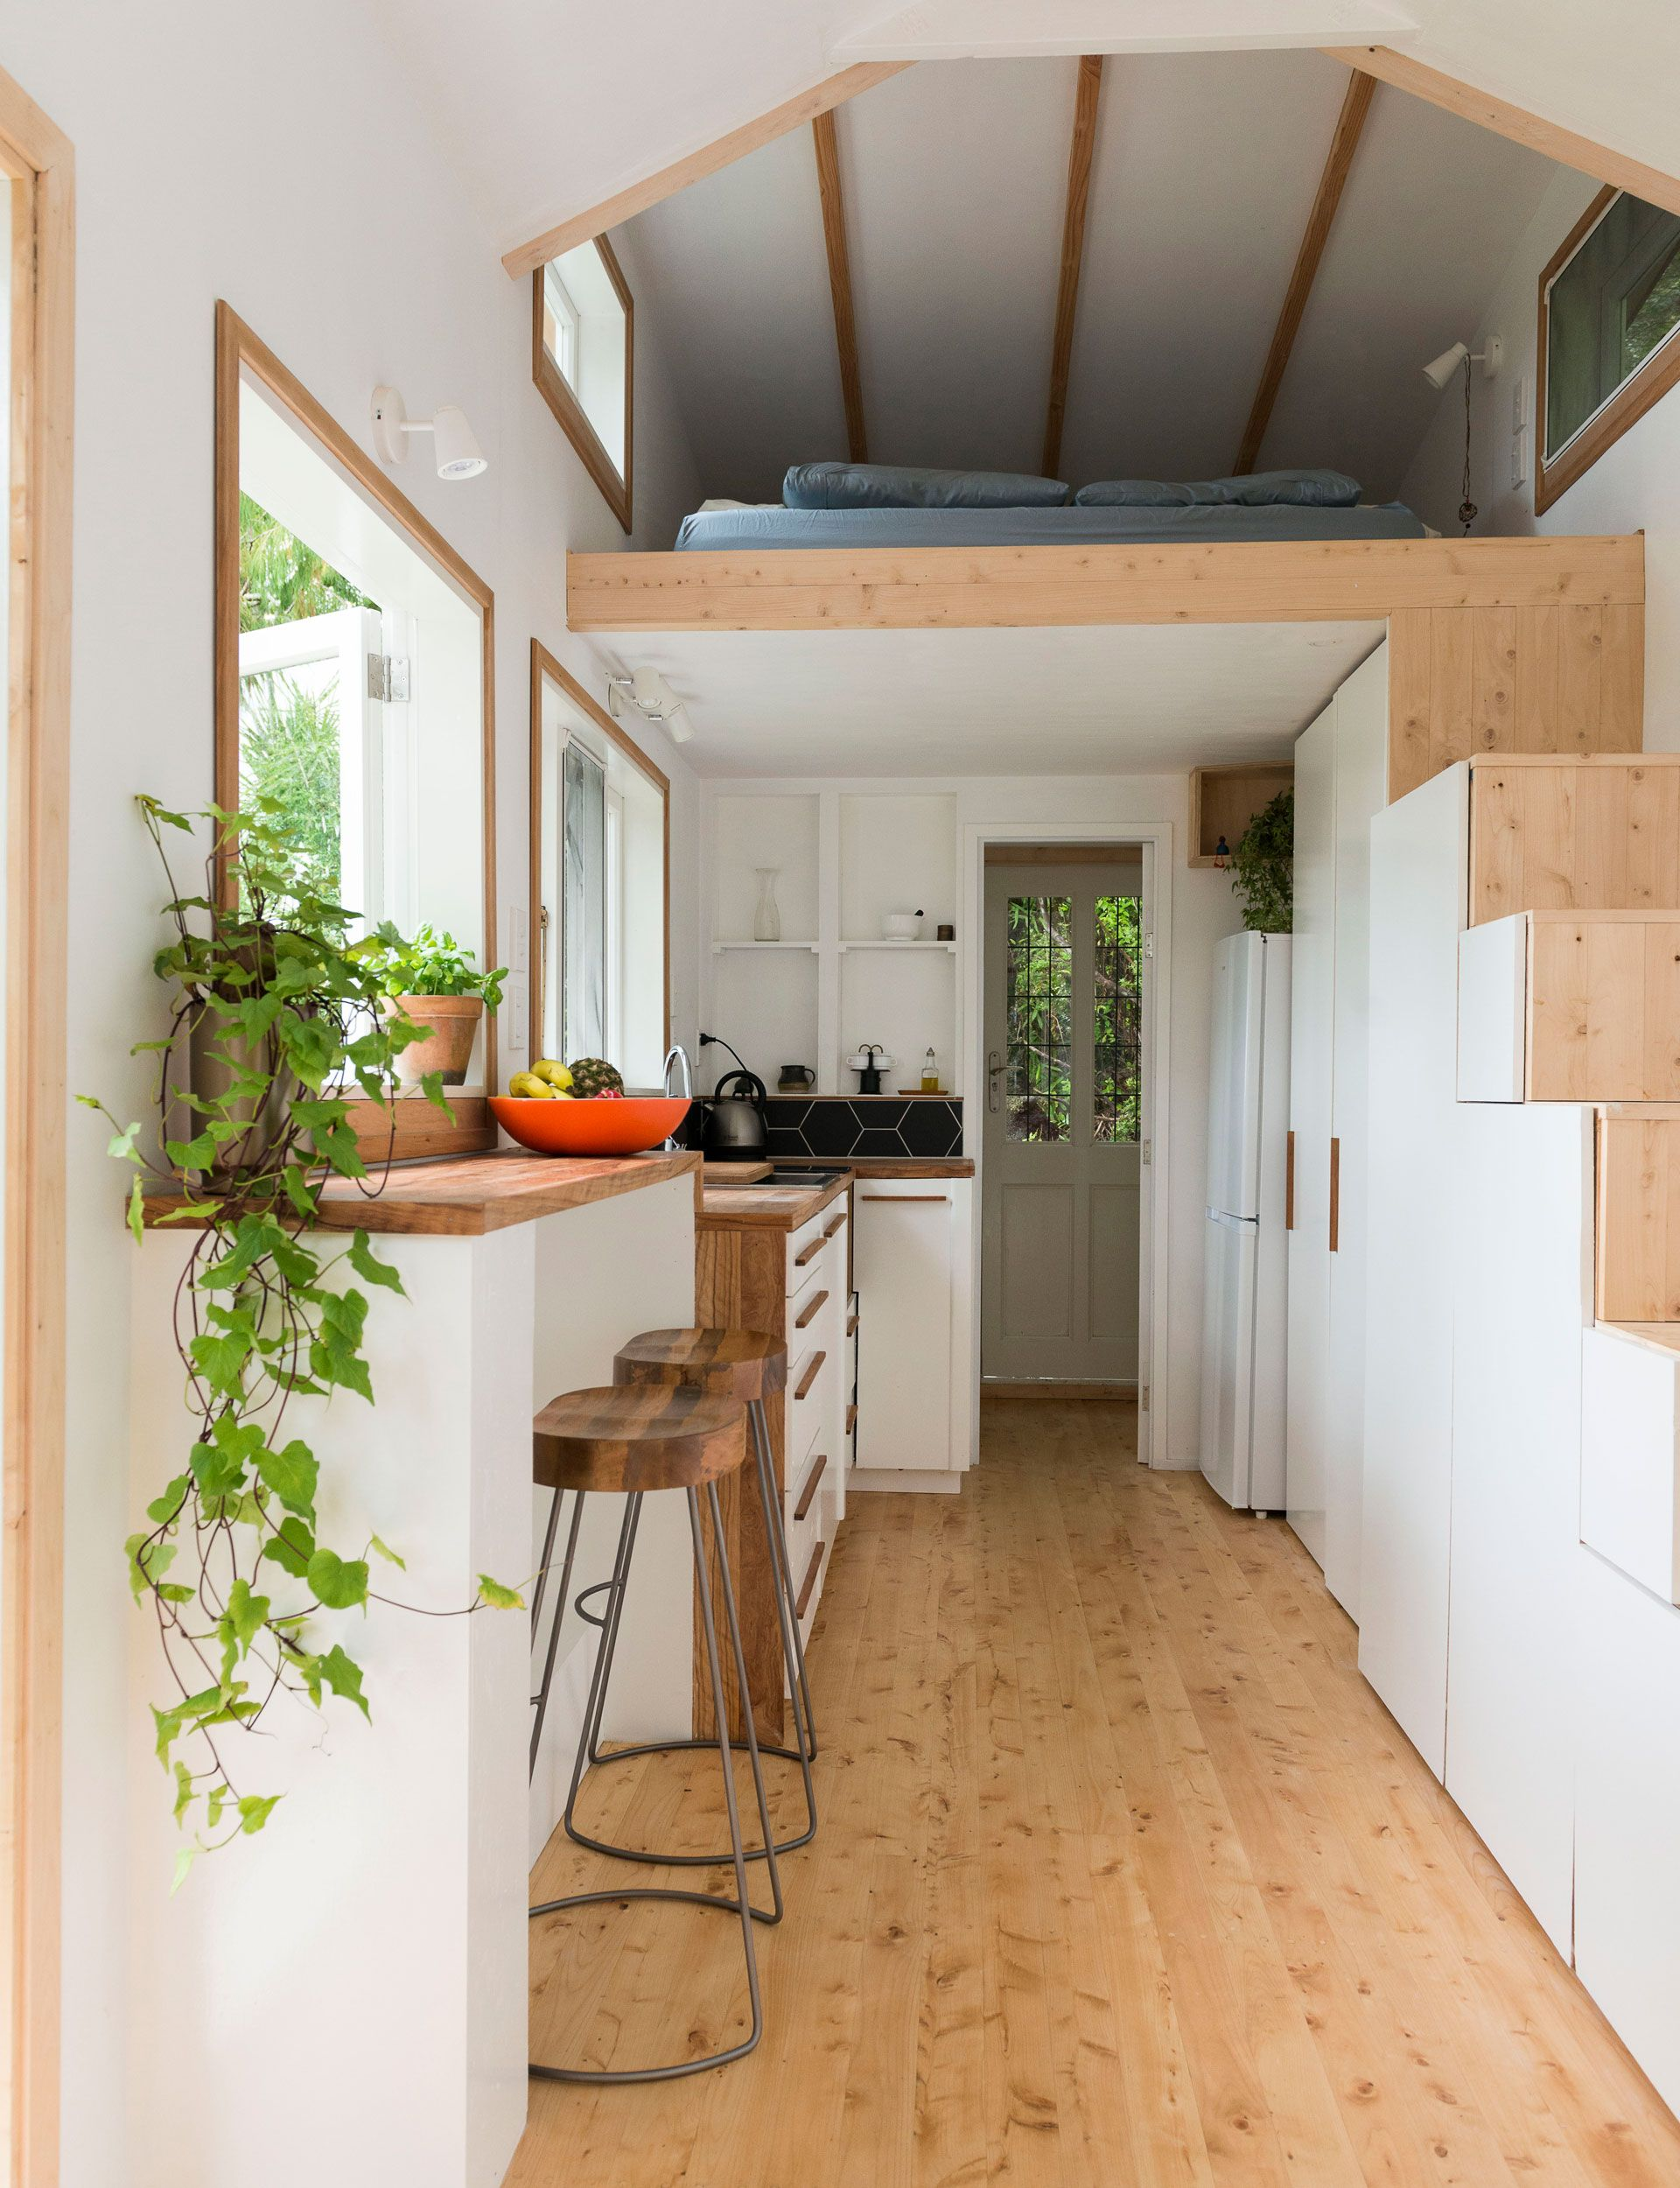 Auckland Couple Build Tiny Home In Henderson Valley Tiny